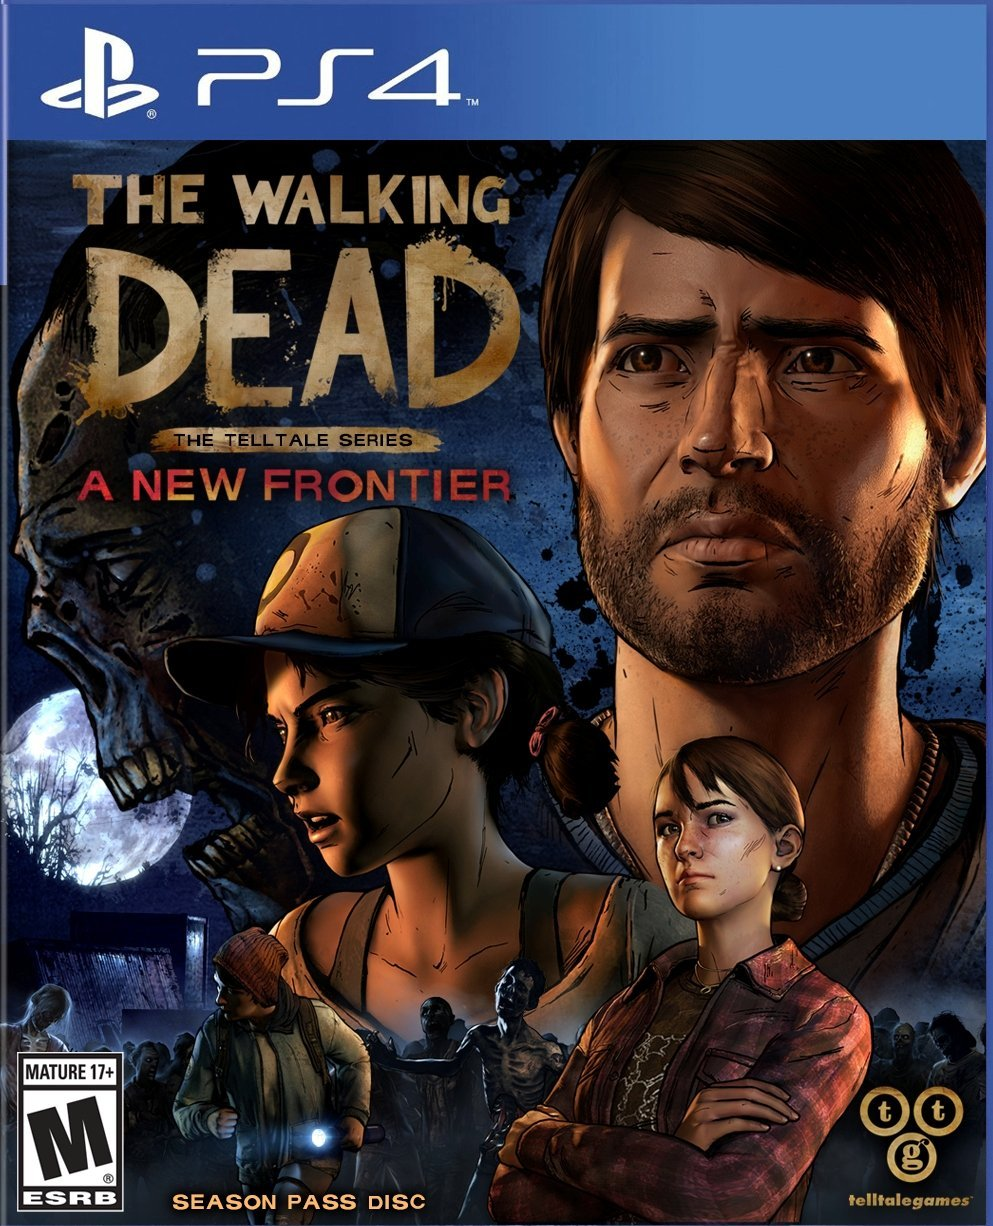 The Walking Dead: Season 3 - The New Frontier Episode 1&2  Review 1